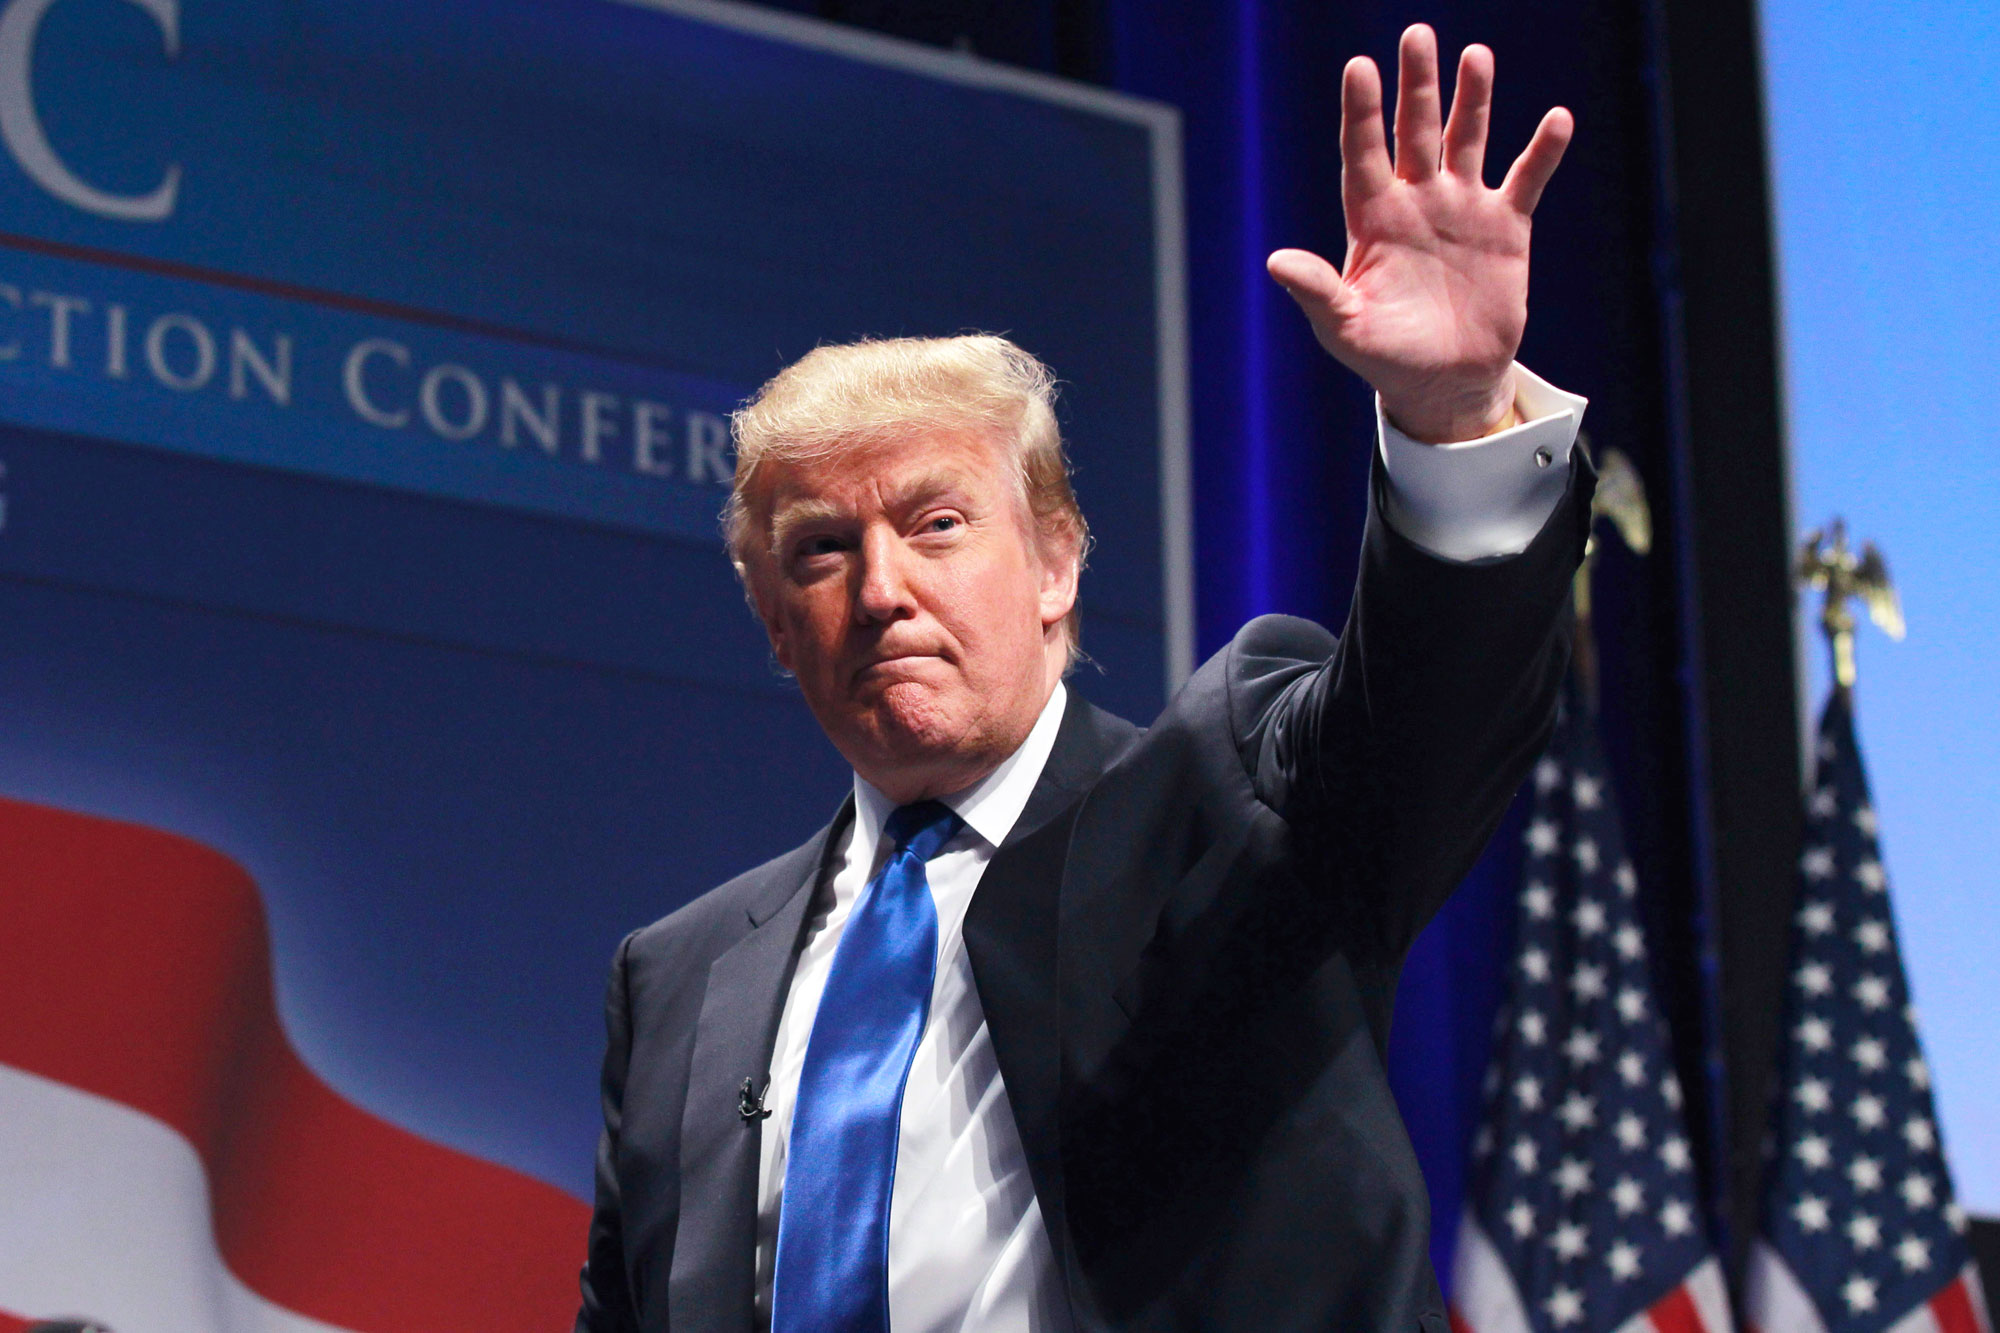 FILE - In this Feb, 10, 2011 file photo, Donald Trump waves after addressing the Conservative Political Action Conference (CPAC) in Washington. Ready or not, the 2012 presidential campaign is under way in earnest a full 18 months before Election Day. The GOP field _ still muddy and made up of no less than a dozen people _ will become clearer in coming days as more Republicans declare they'll run or sit out _ and President Barack Obama's schedule already is packed with fundraisers and visits to states important to his re-election chances. (AP Photo/Alex Brandon, File) Donald Trump 2011 AP WX402 Campaign 2012 AP STF